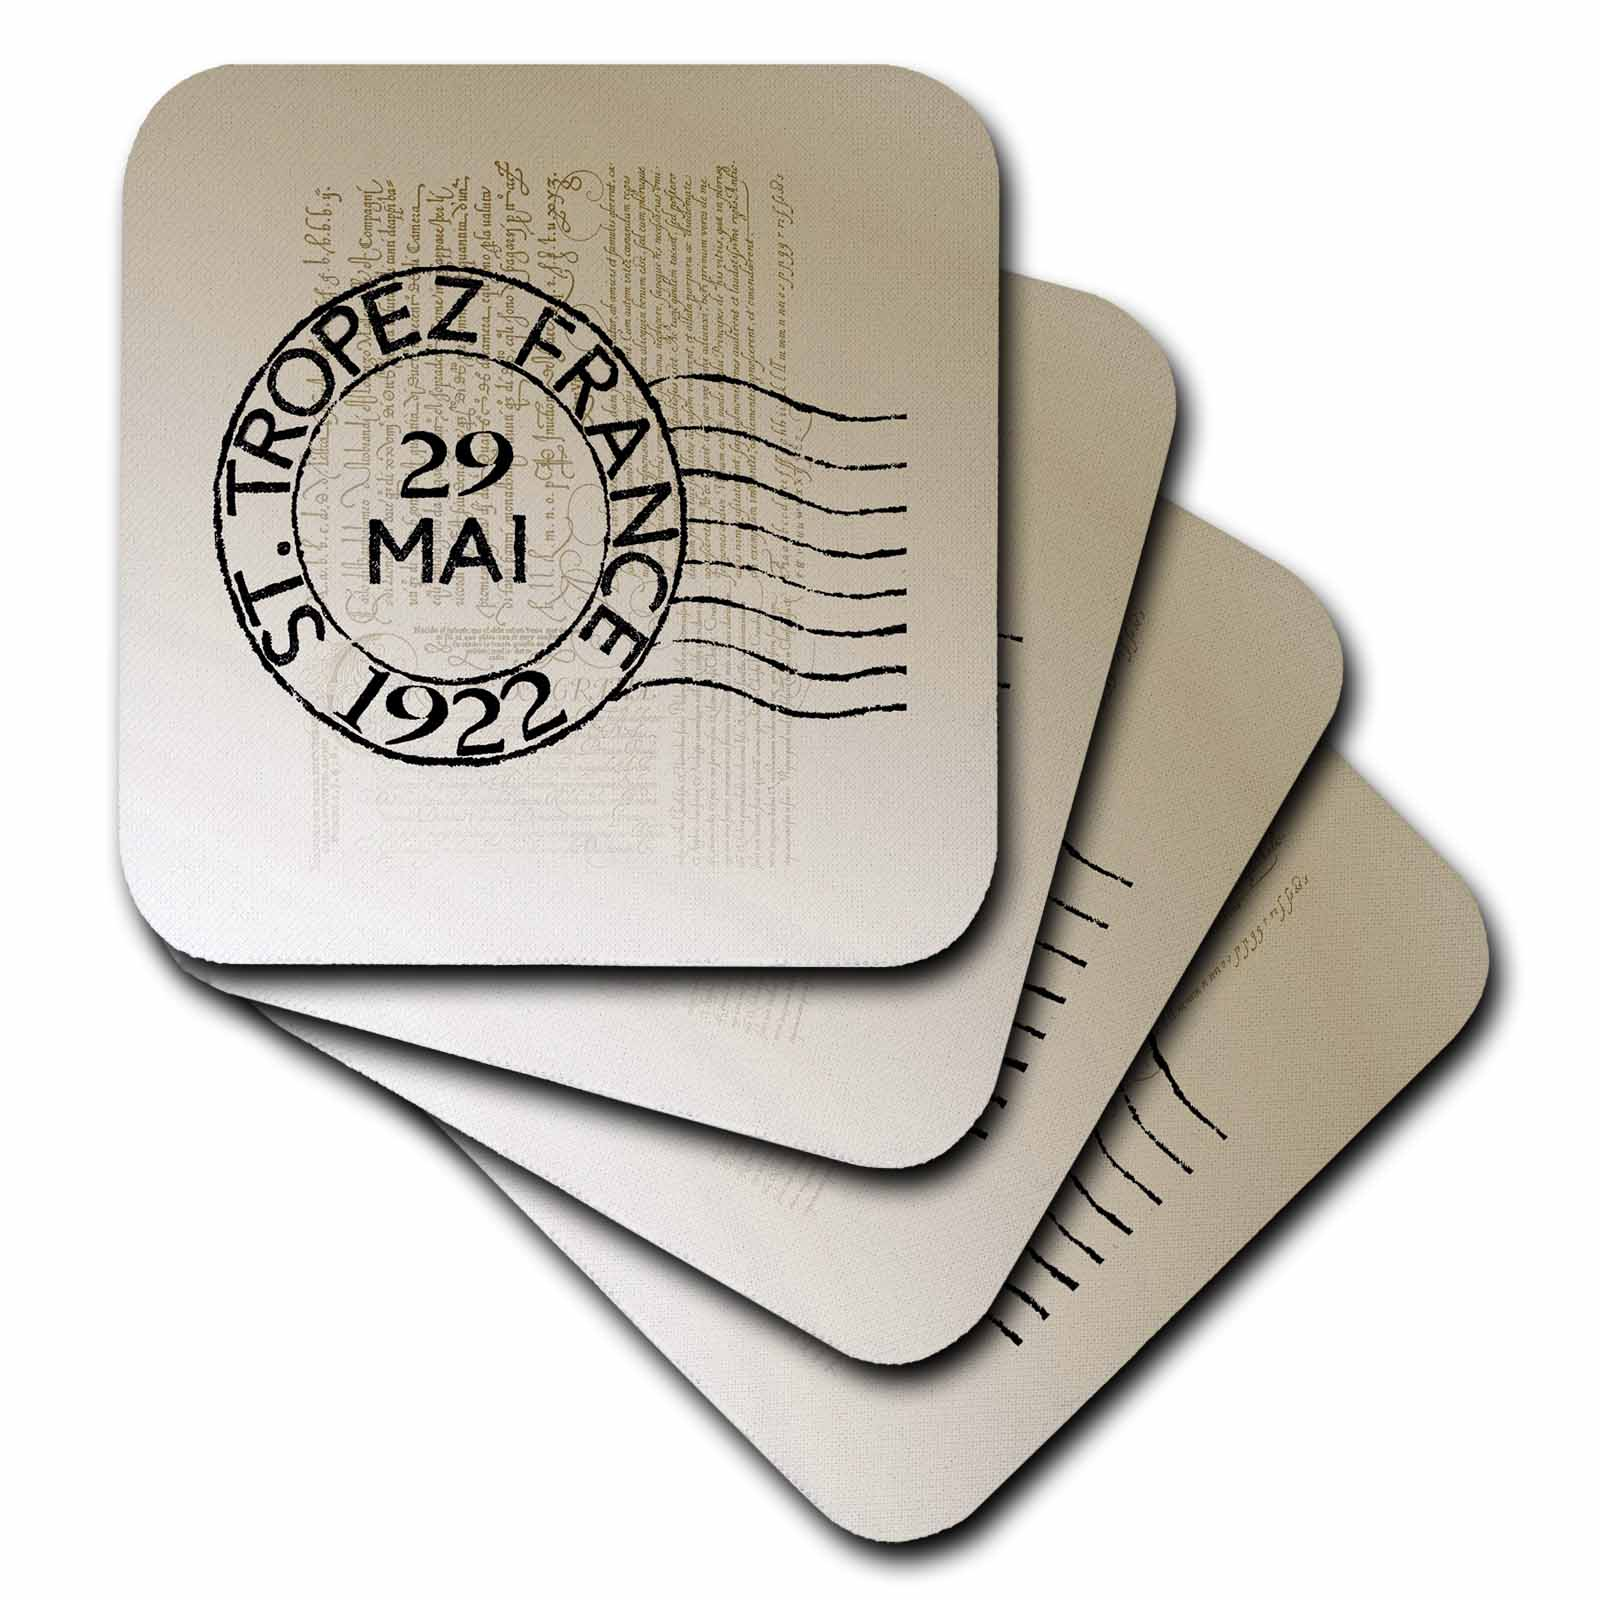 3dRose St. Tropez Vintage French Art Postage Stamp, Soft Coasters, set of 4 by 3dRose